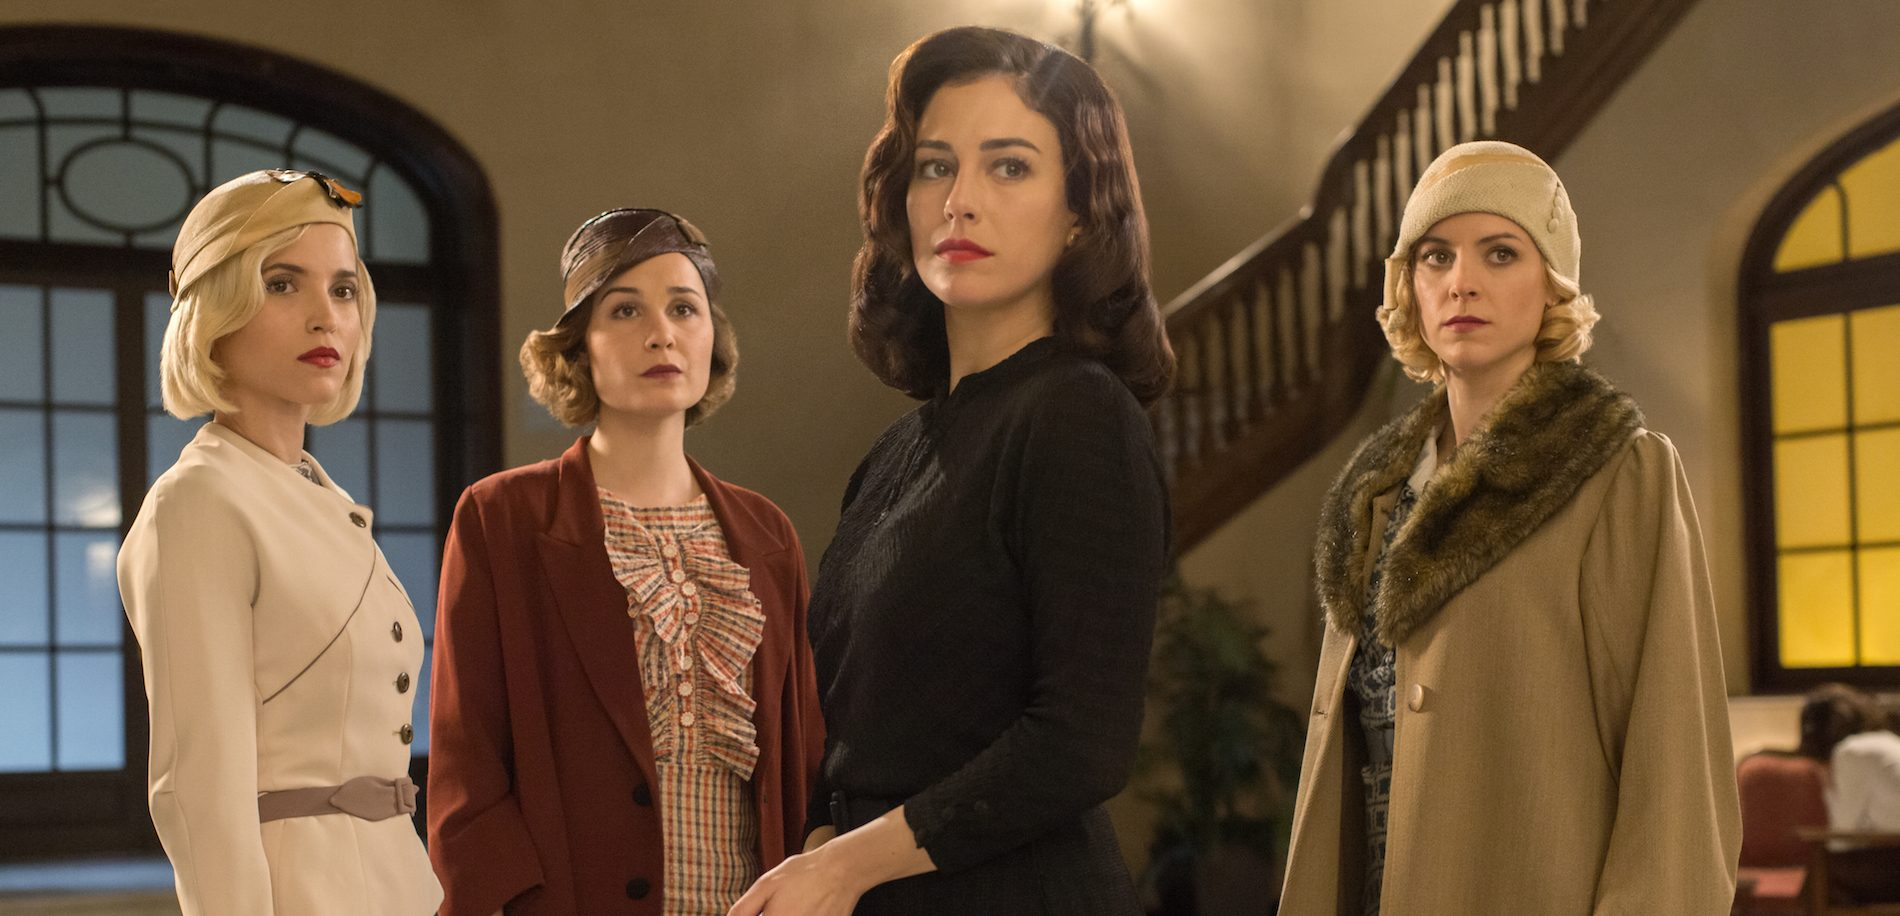 Here's the First Trailer for Season 3 of Netflix's 1920s Feminist Workplace Drama 'Las Chicas del Cable'